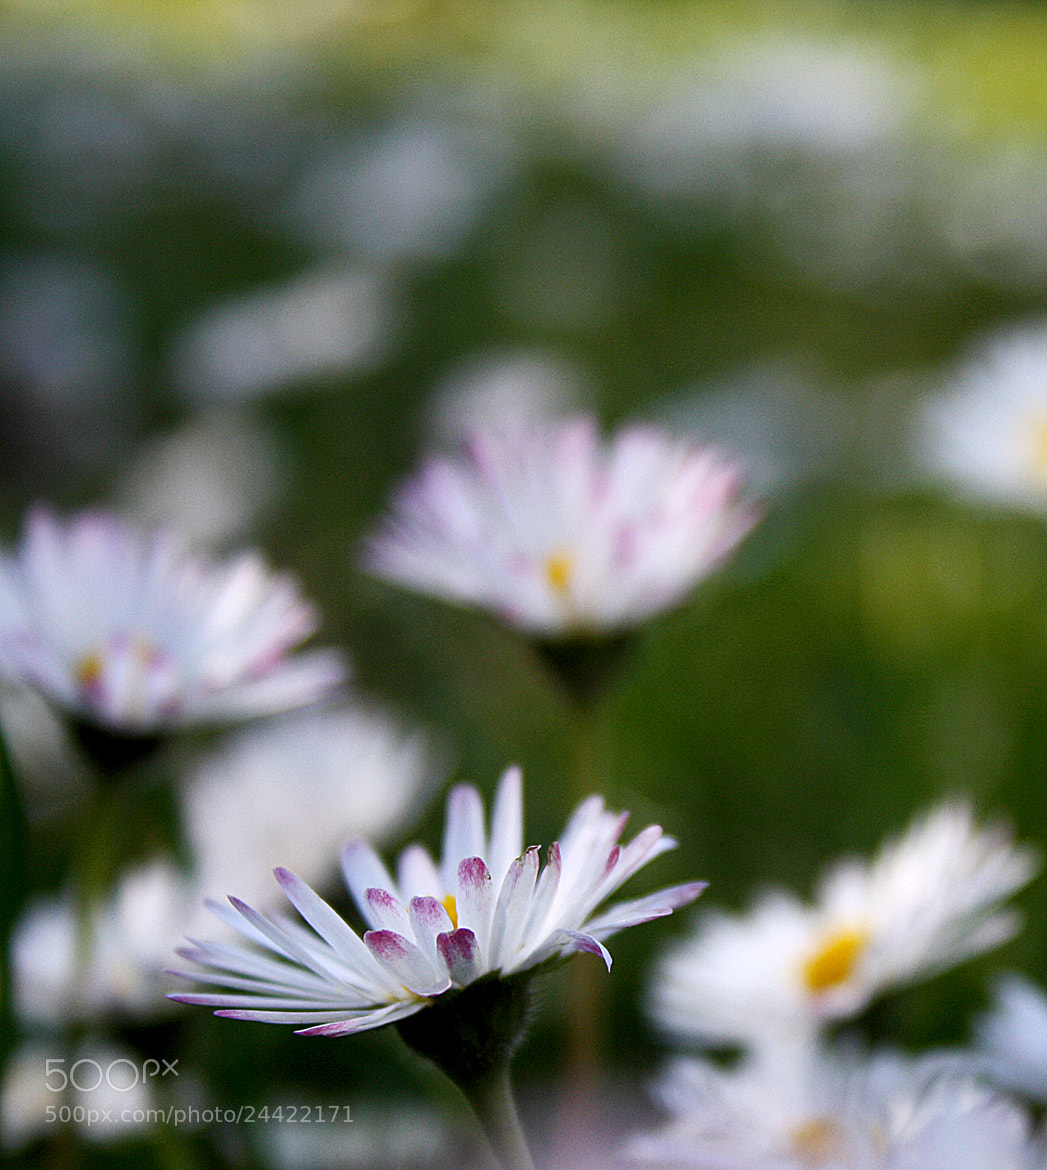 Photograph Bellis perennis by Rui Eusébio on 500px